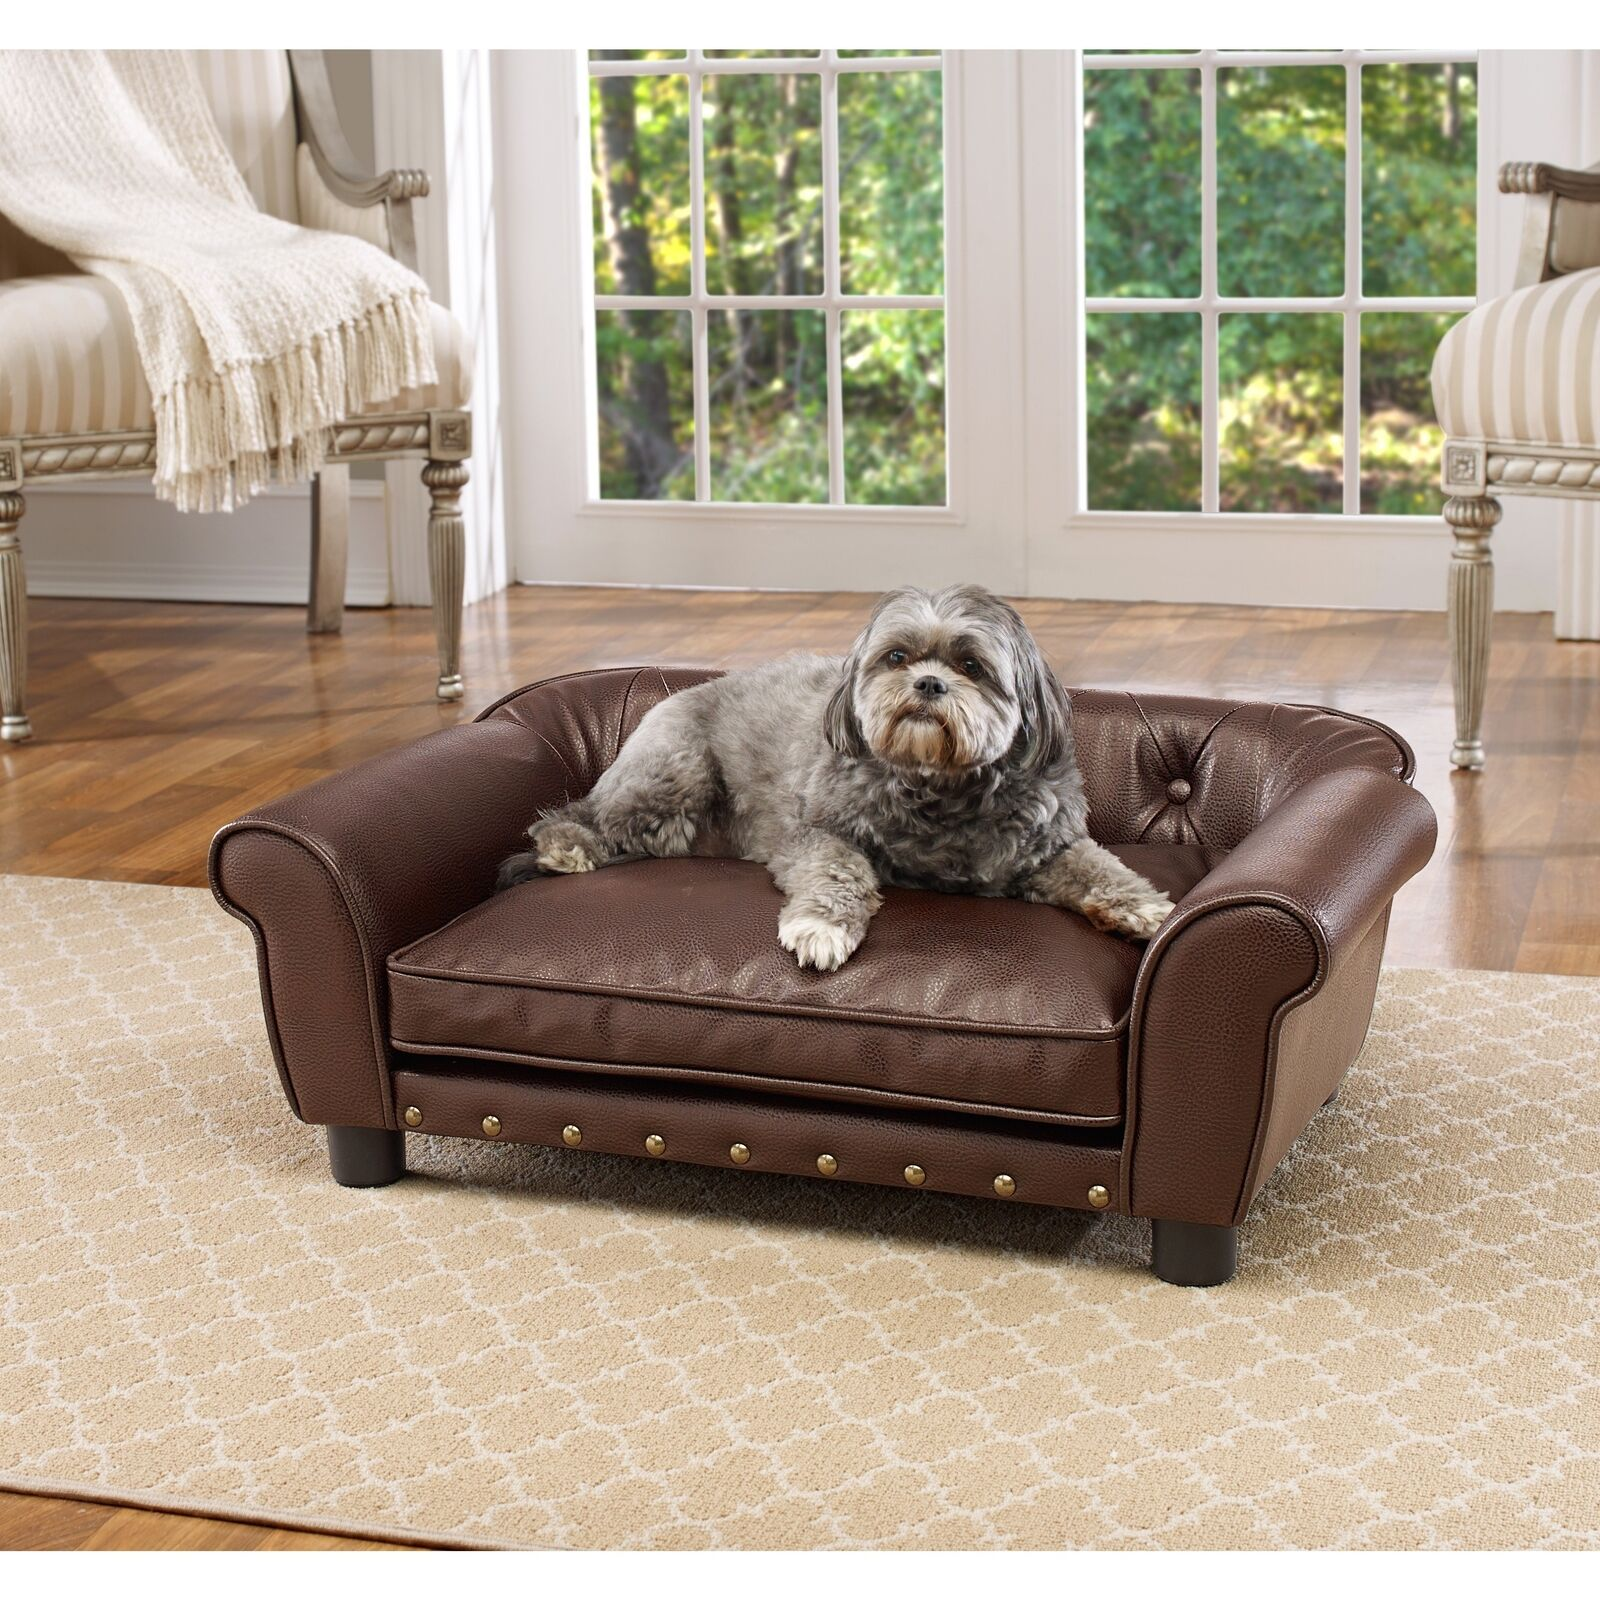 braun Faux Leather Tufted Pet Sofa Bed Dog Cat Sn le Pillow Top Sleep Couch